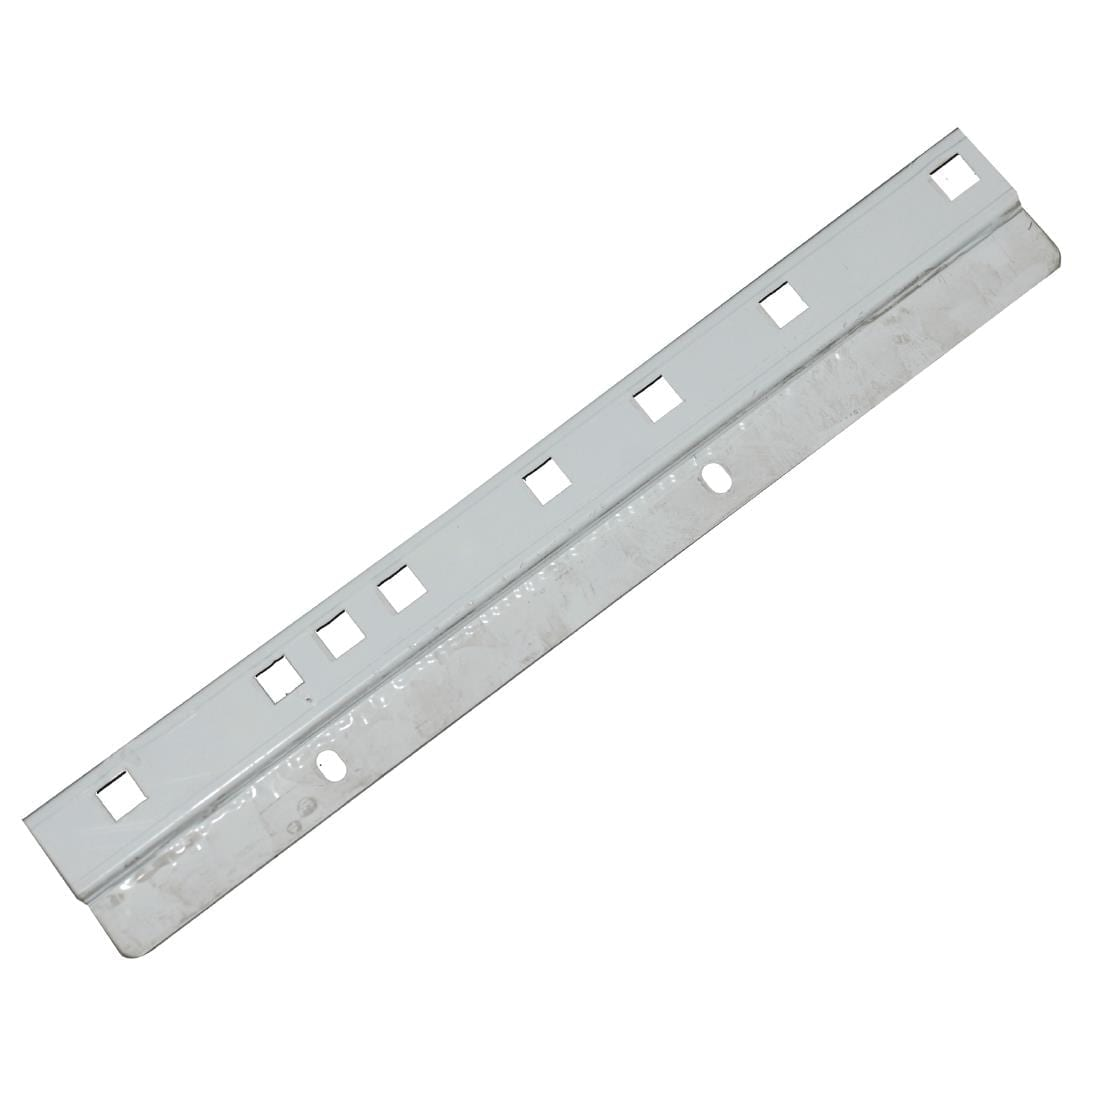 Replacement Front Side Support for CL108 CL109 CN402 CR711 CT425 G604 G605 G622 U636 U637 U638